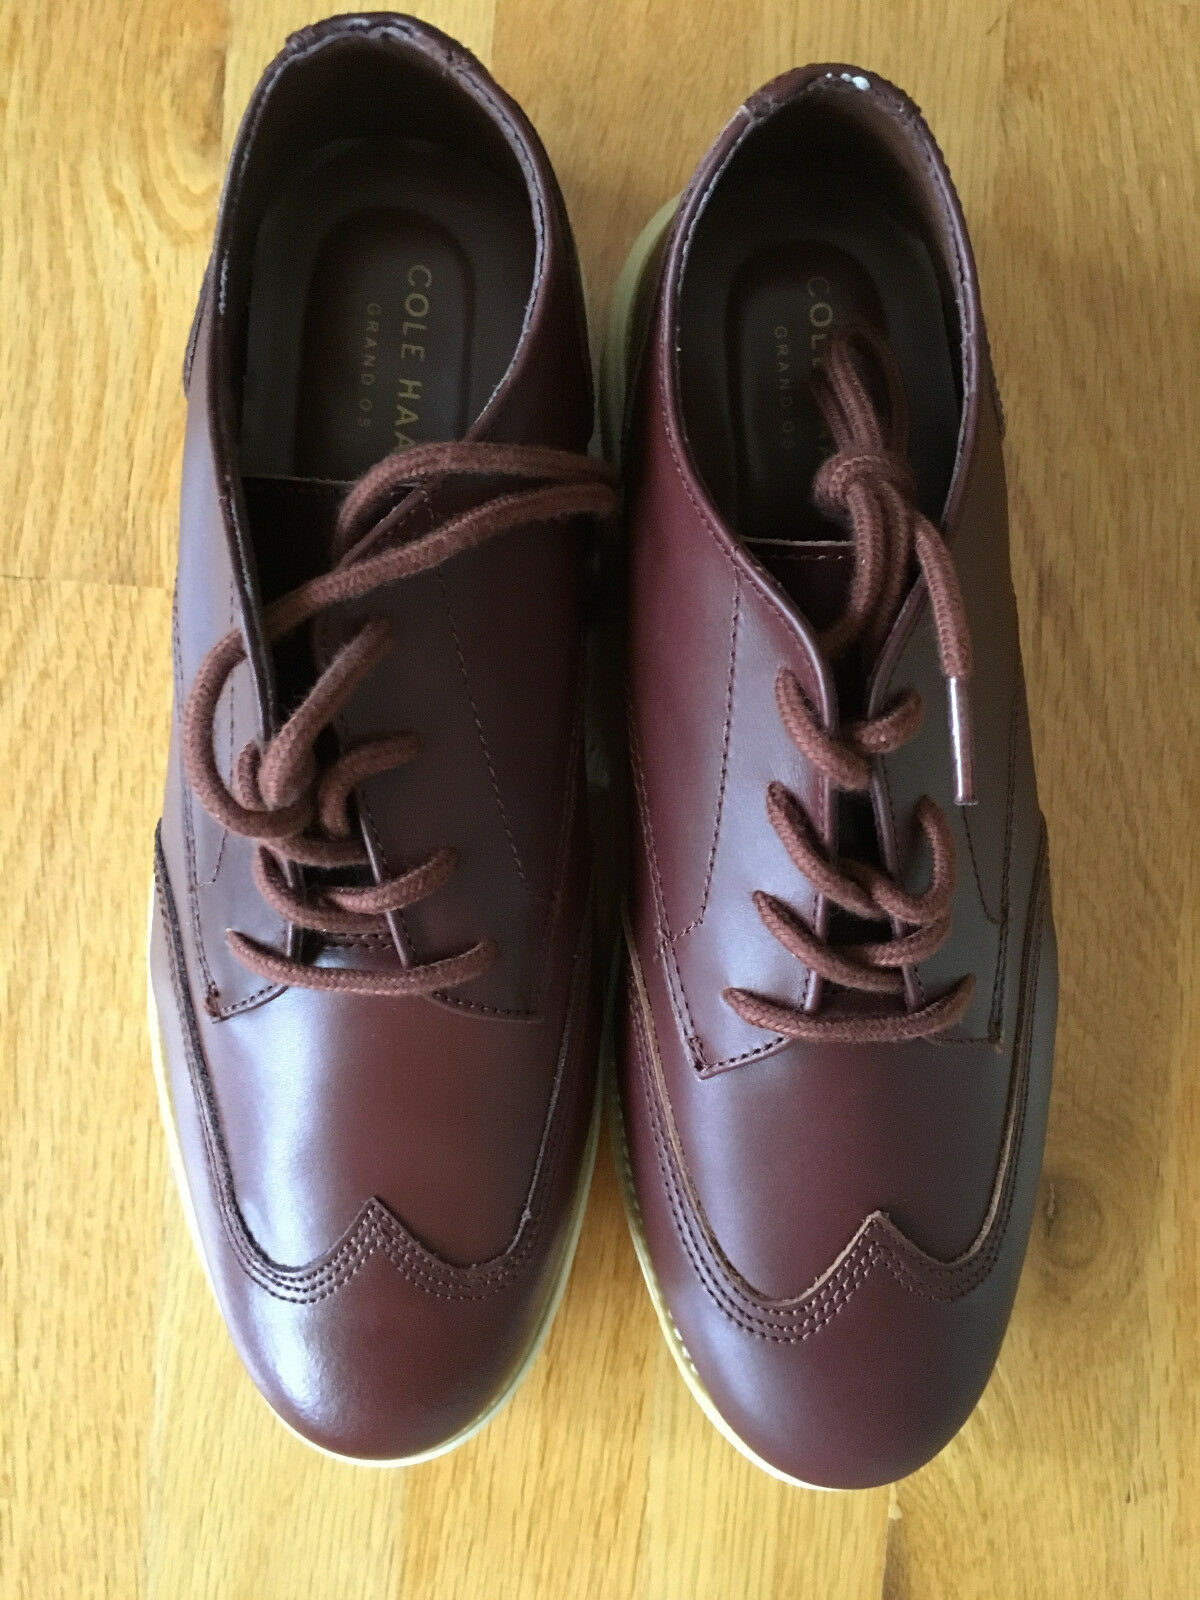 NIB Cole Haan Grand.OS hommes wingtip oxford, woodbury cream, Taille 7